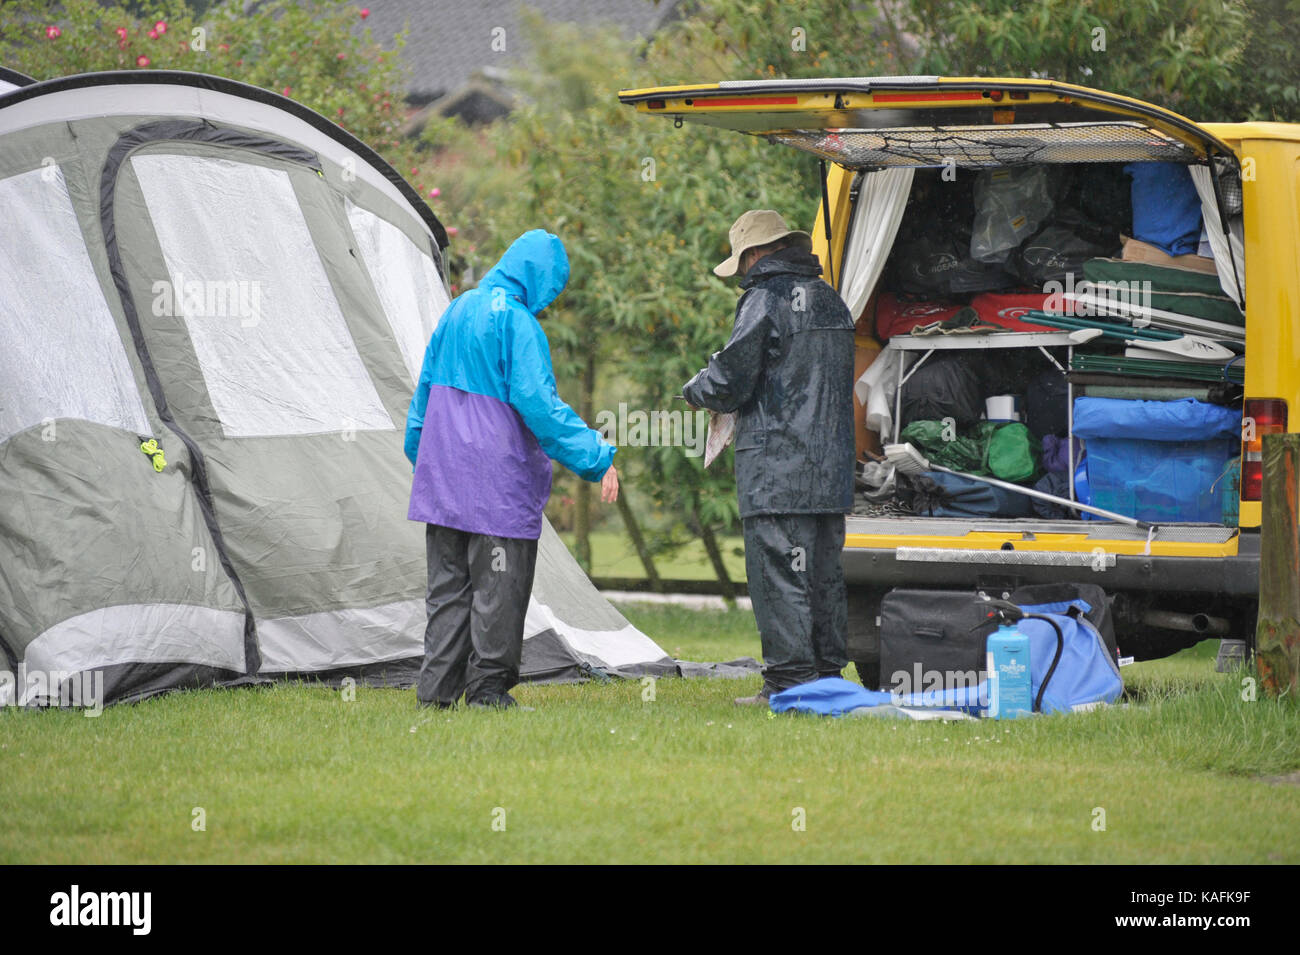 older couple pitching tent in the rain - Stock Image